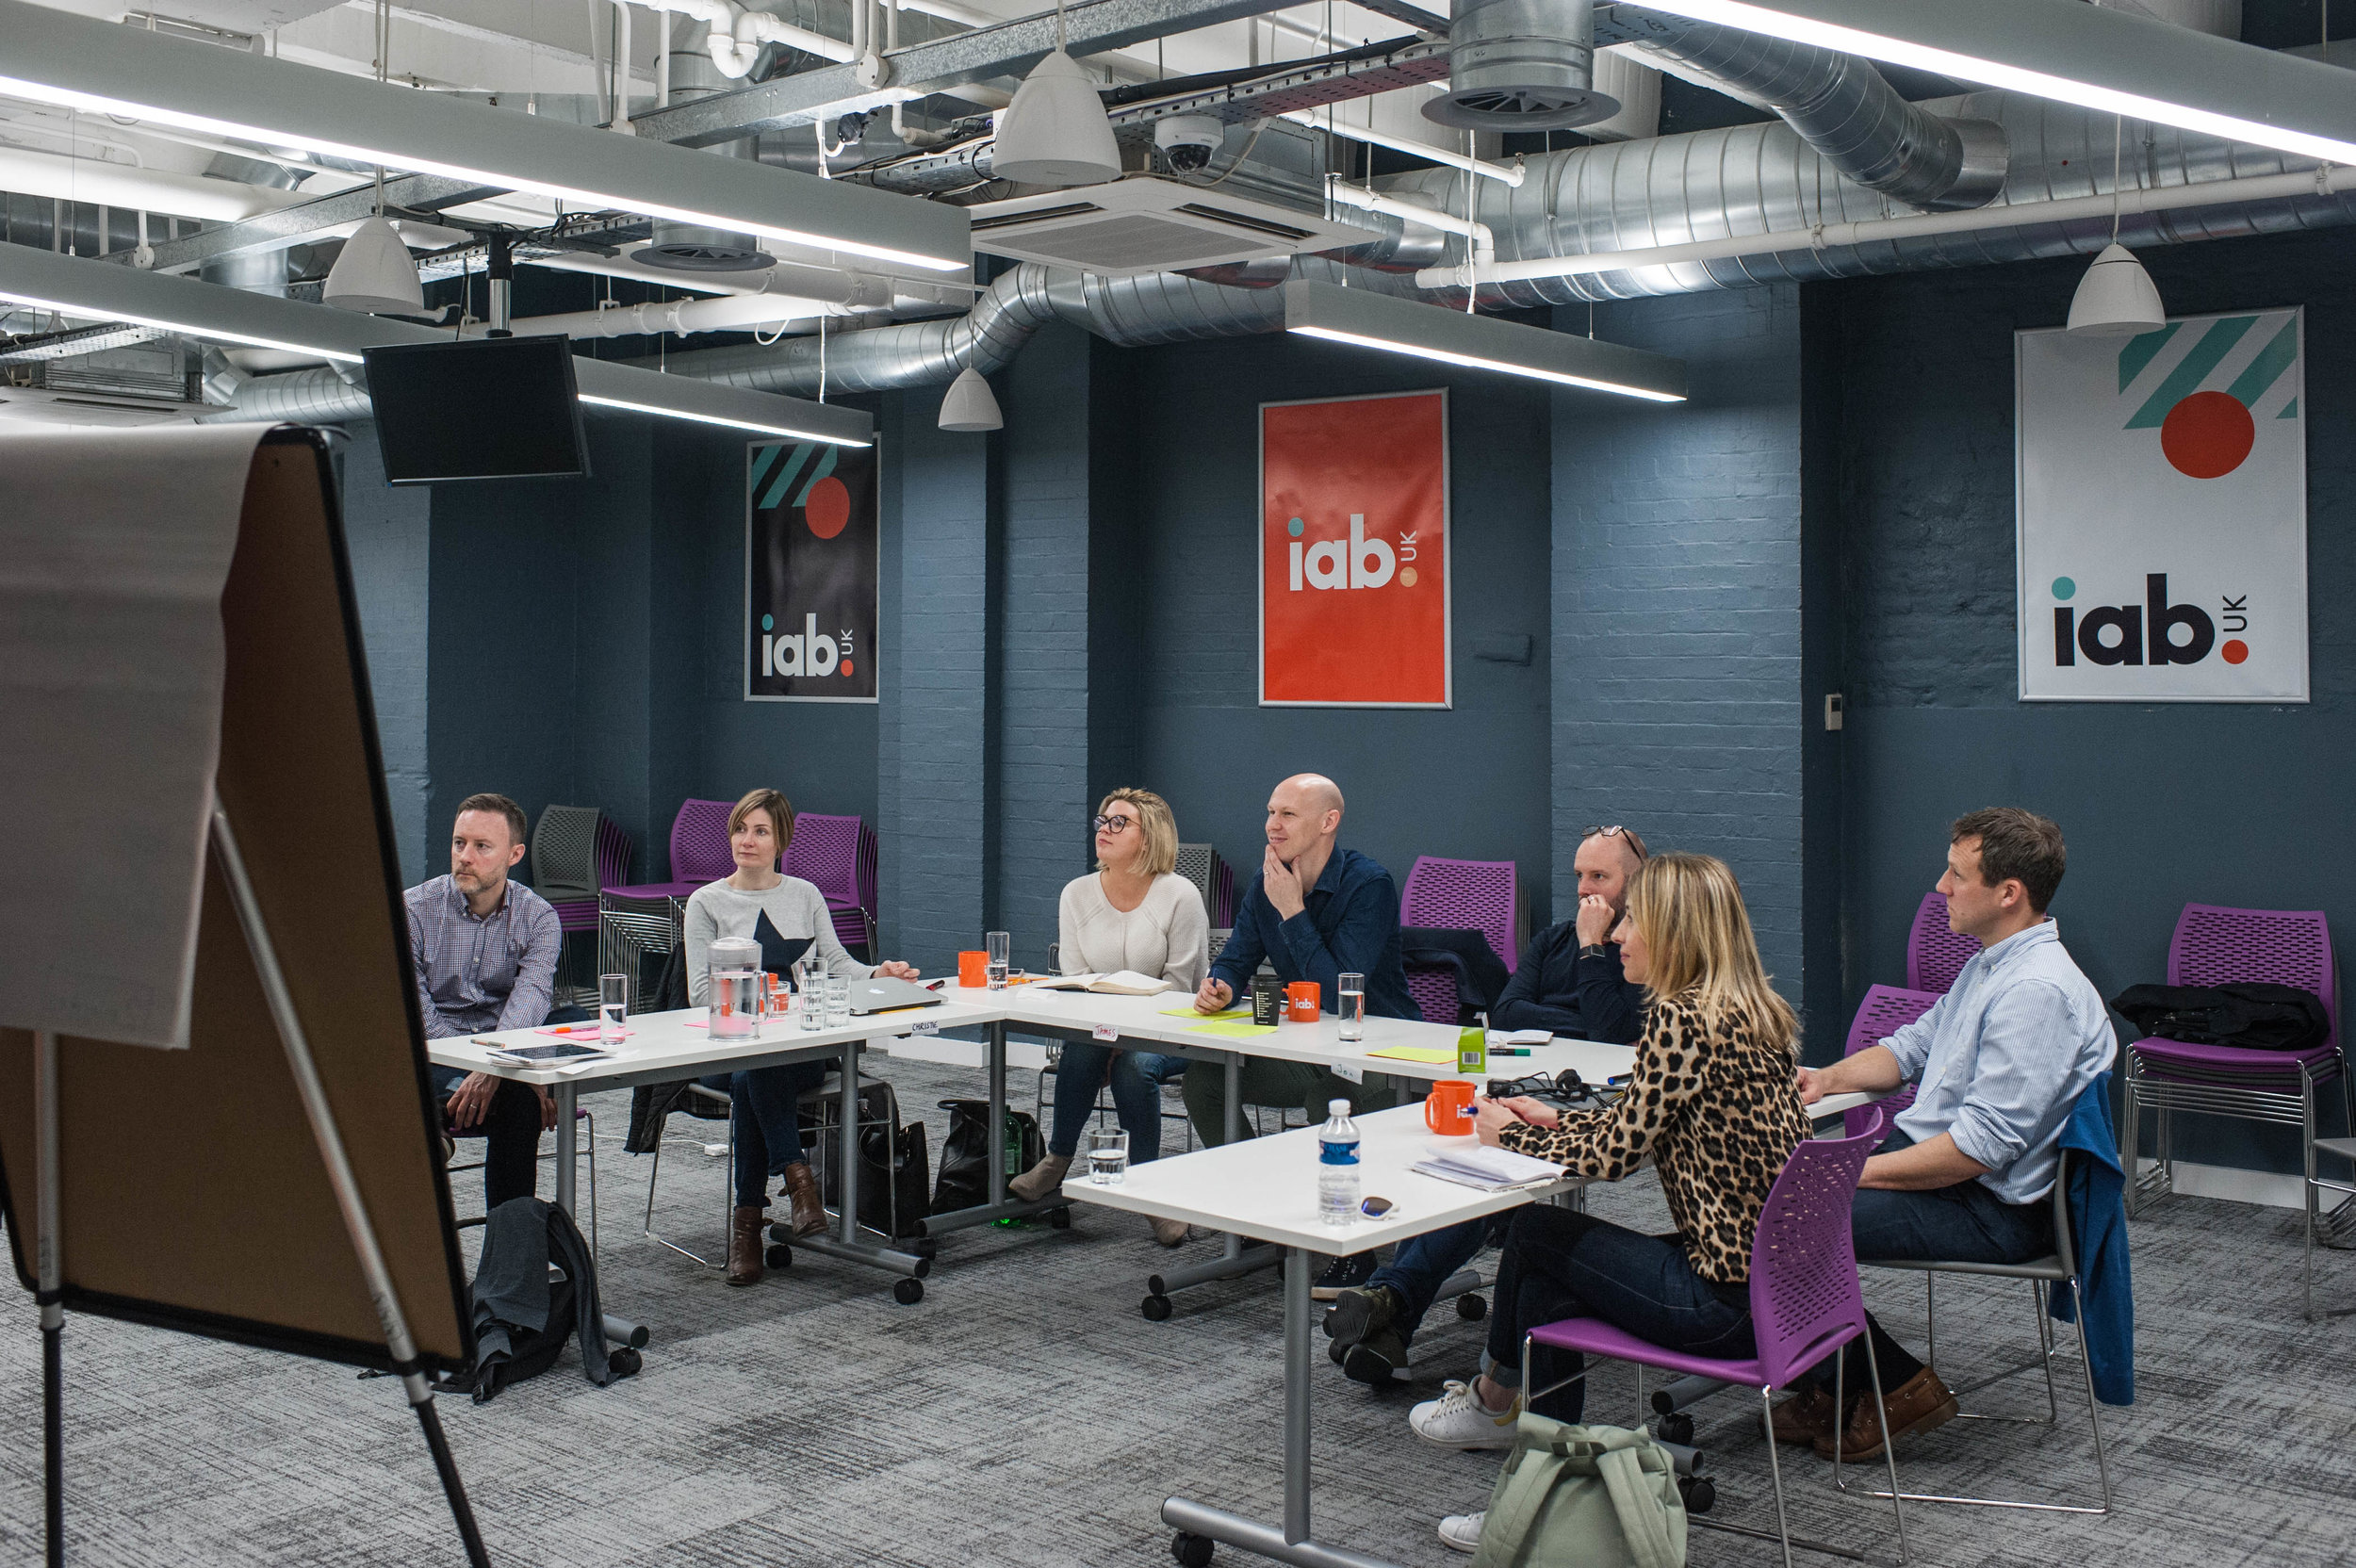 IAB Uk_Incidental Shots_SM (171 of 312).jpg